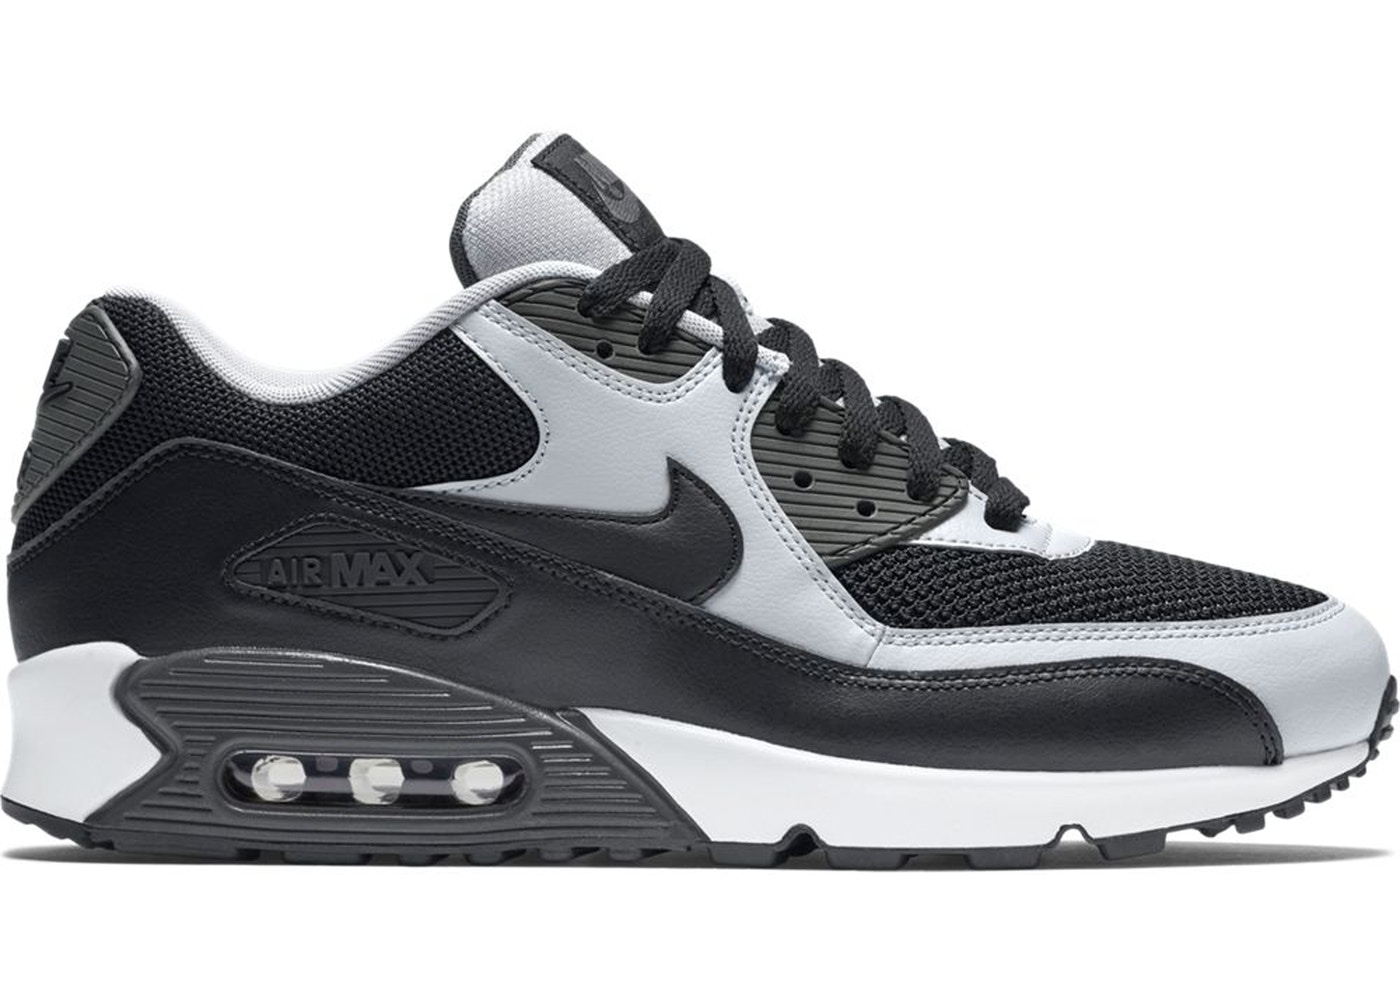 buy popular a2a33 20cc8 Air Max 90 Black Wolf Grey - 537384-053